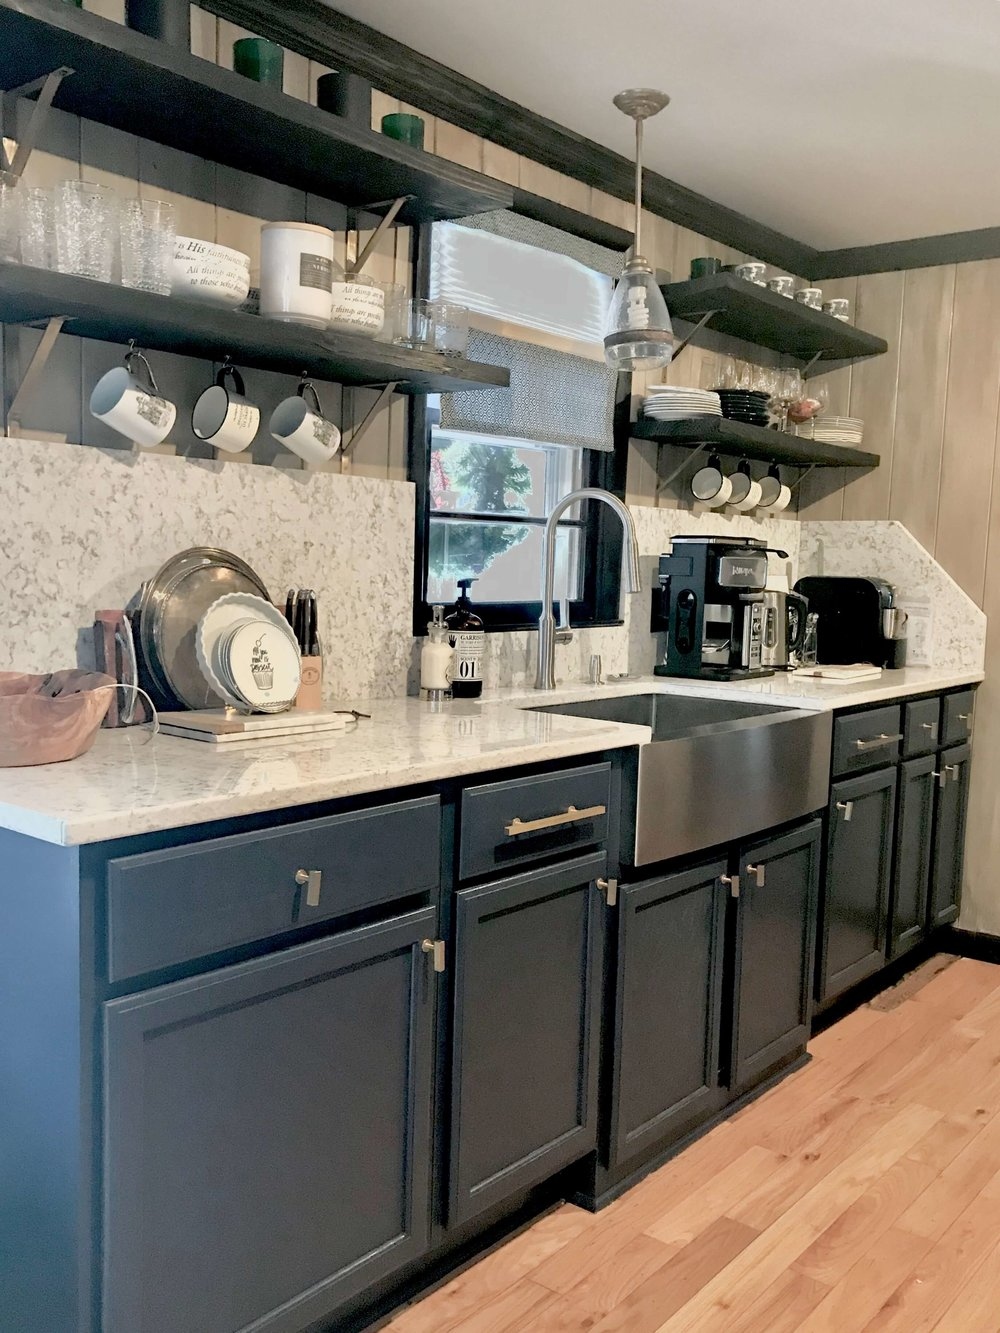 A Versatile Farmhouse Sink And Open Shelving.